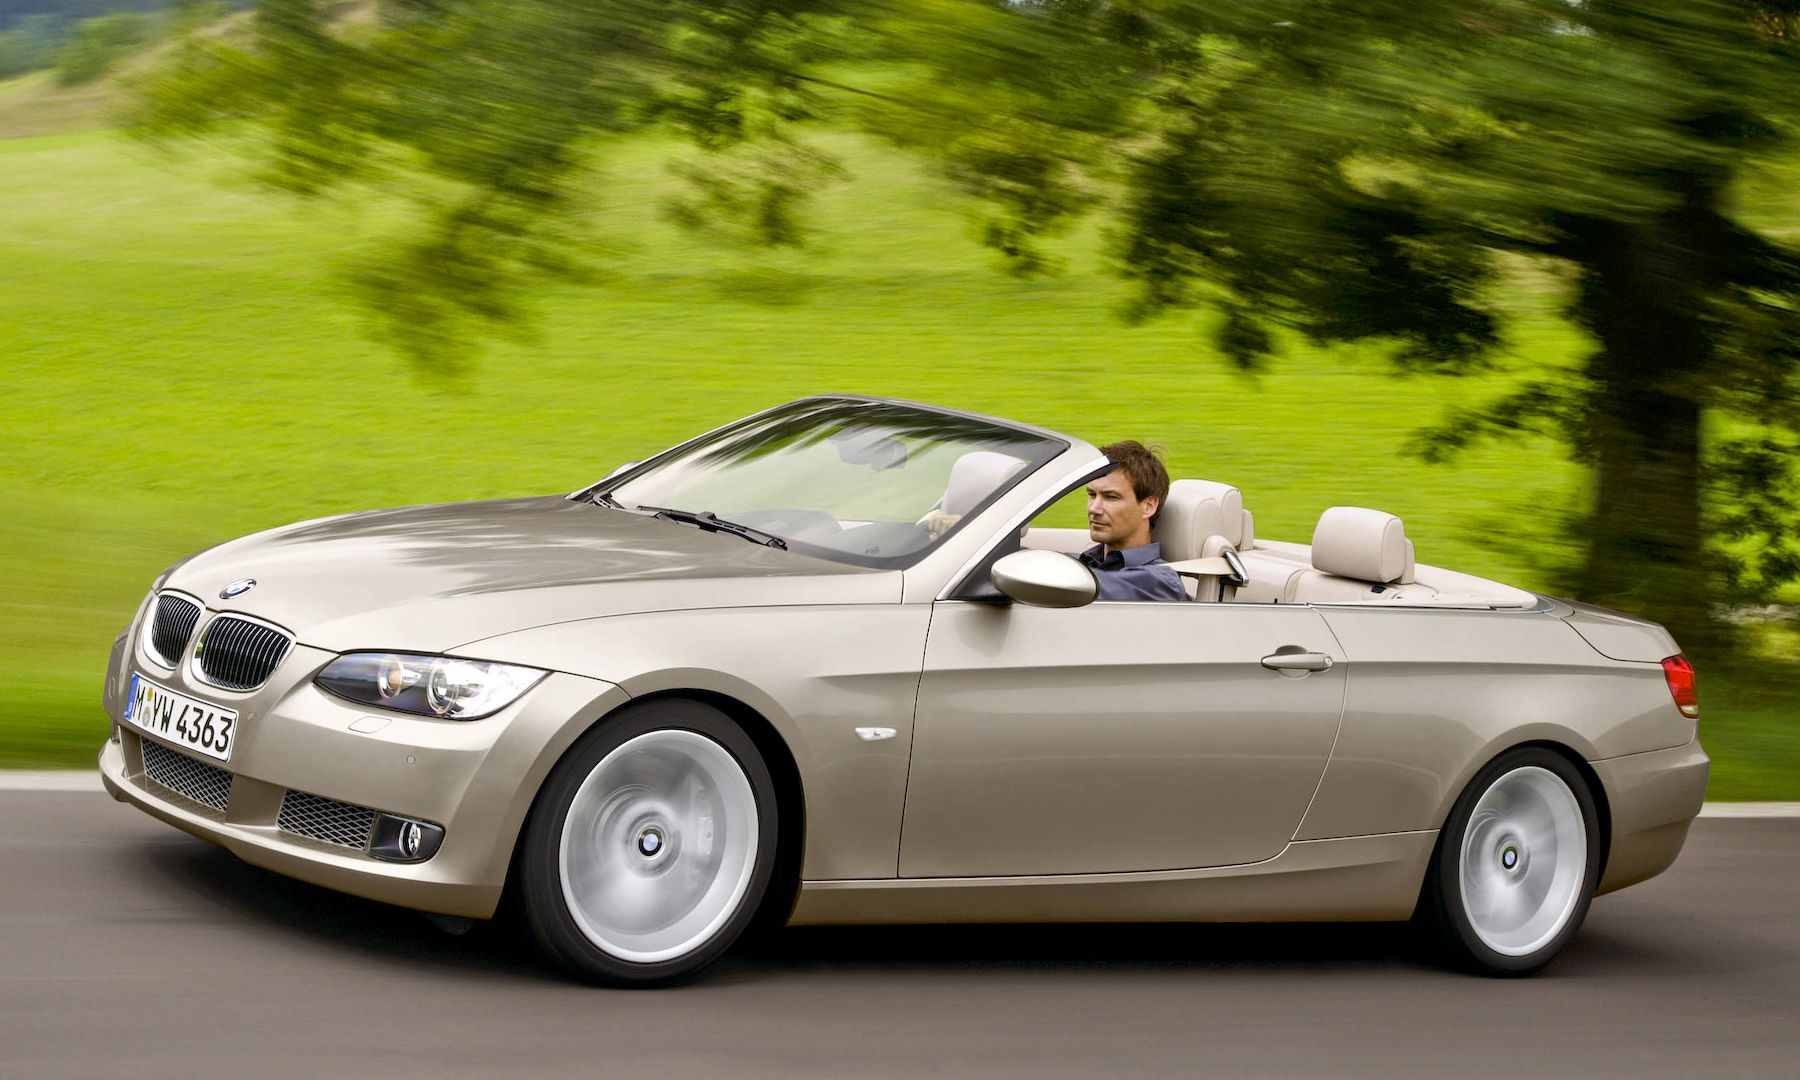 used autobytel bold sport bmw package series hardtop modern com convertibles and best on convertible brown stunning design black